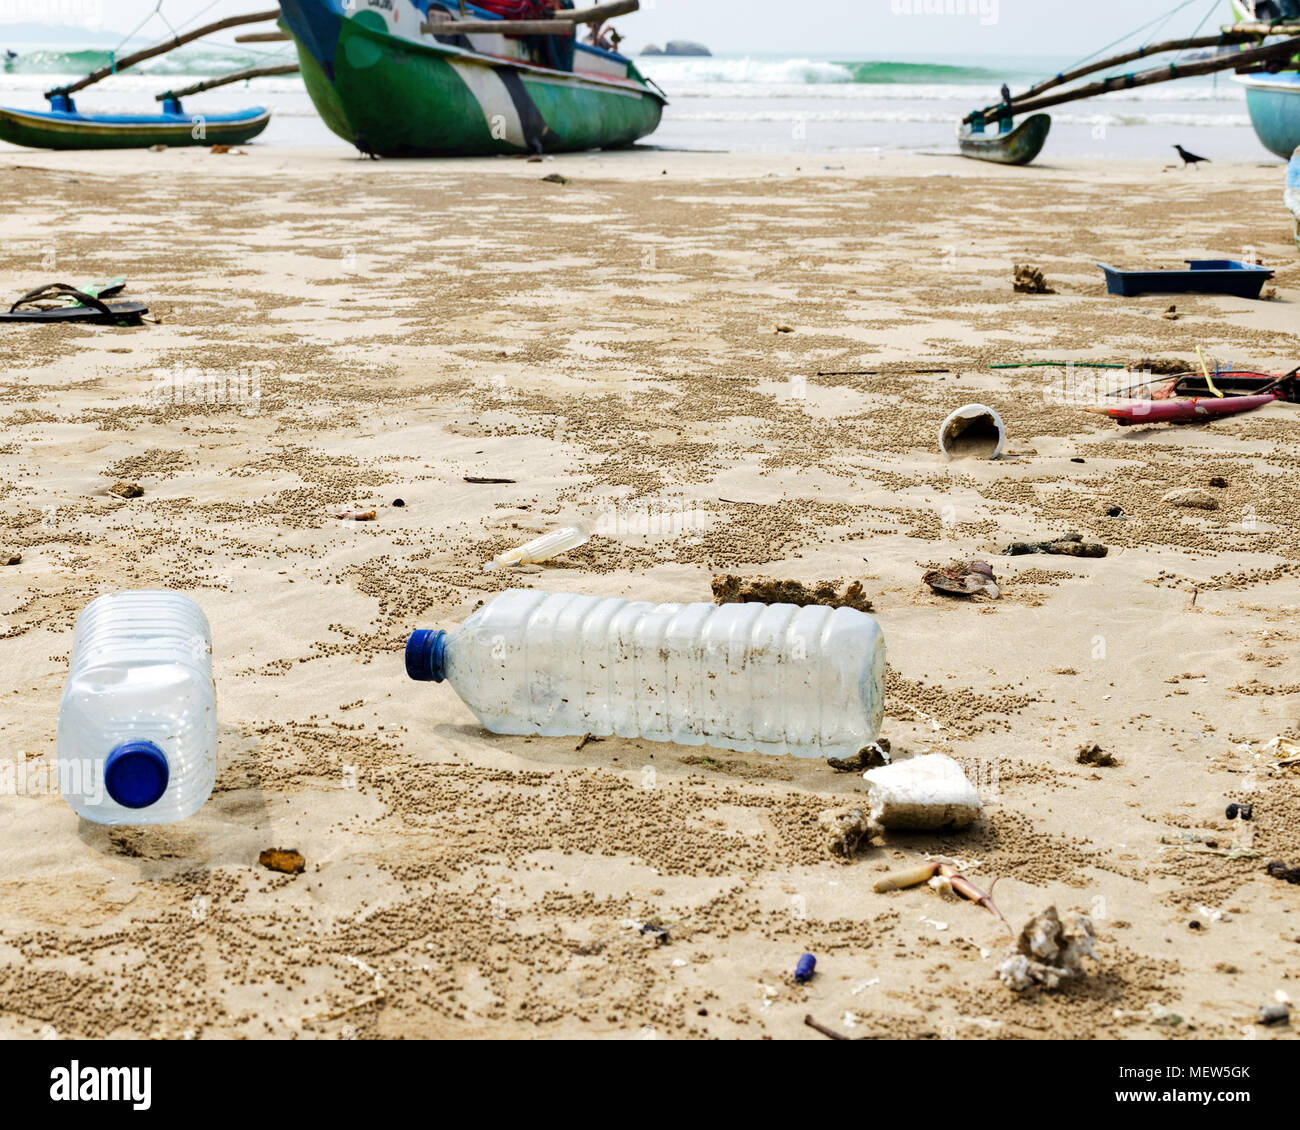 Empty used plastic bottles and other waste thrown out at the sea beach on background is fishing boats, environmental pollution, ecology degradation. - Stock Image